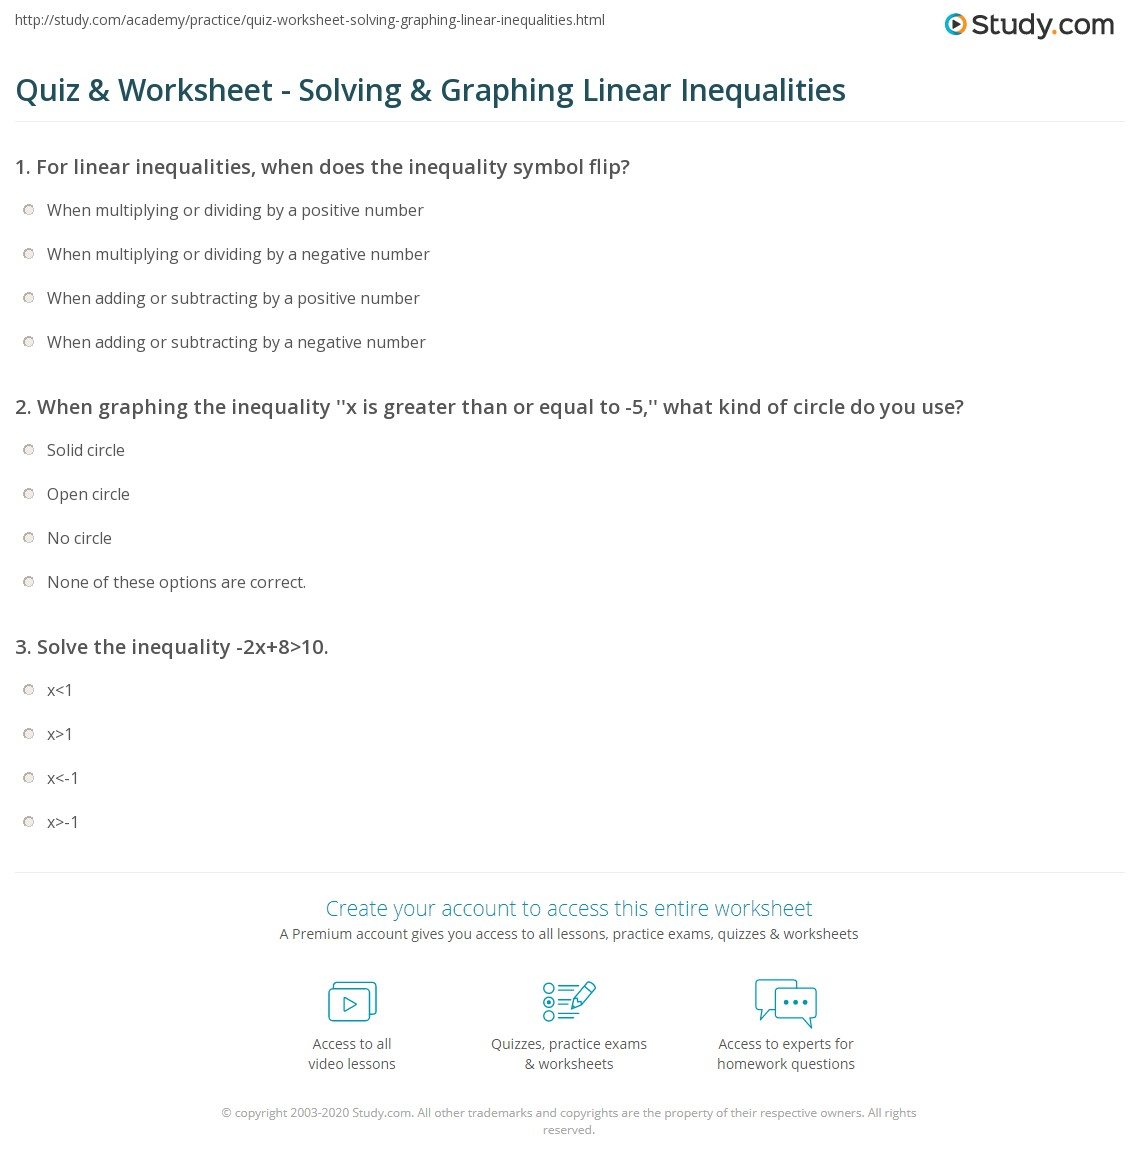 Solving Linear Inequalities Worksheet